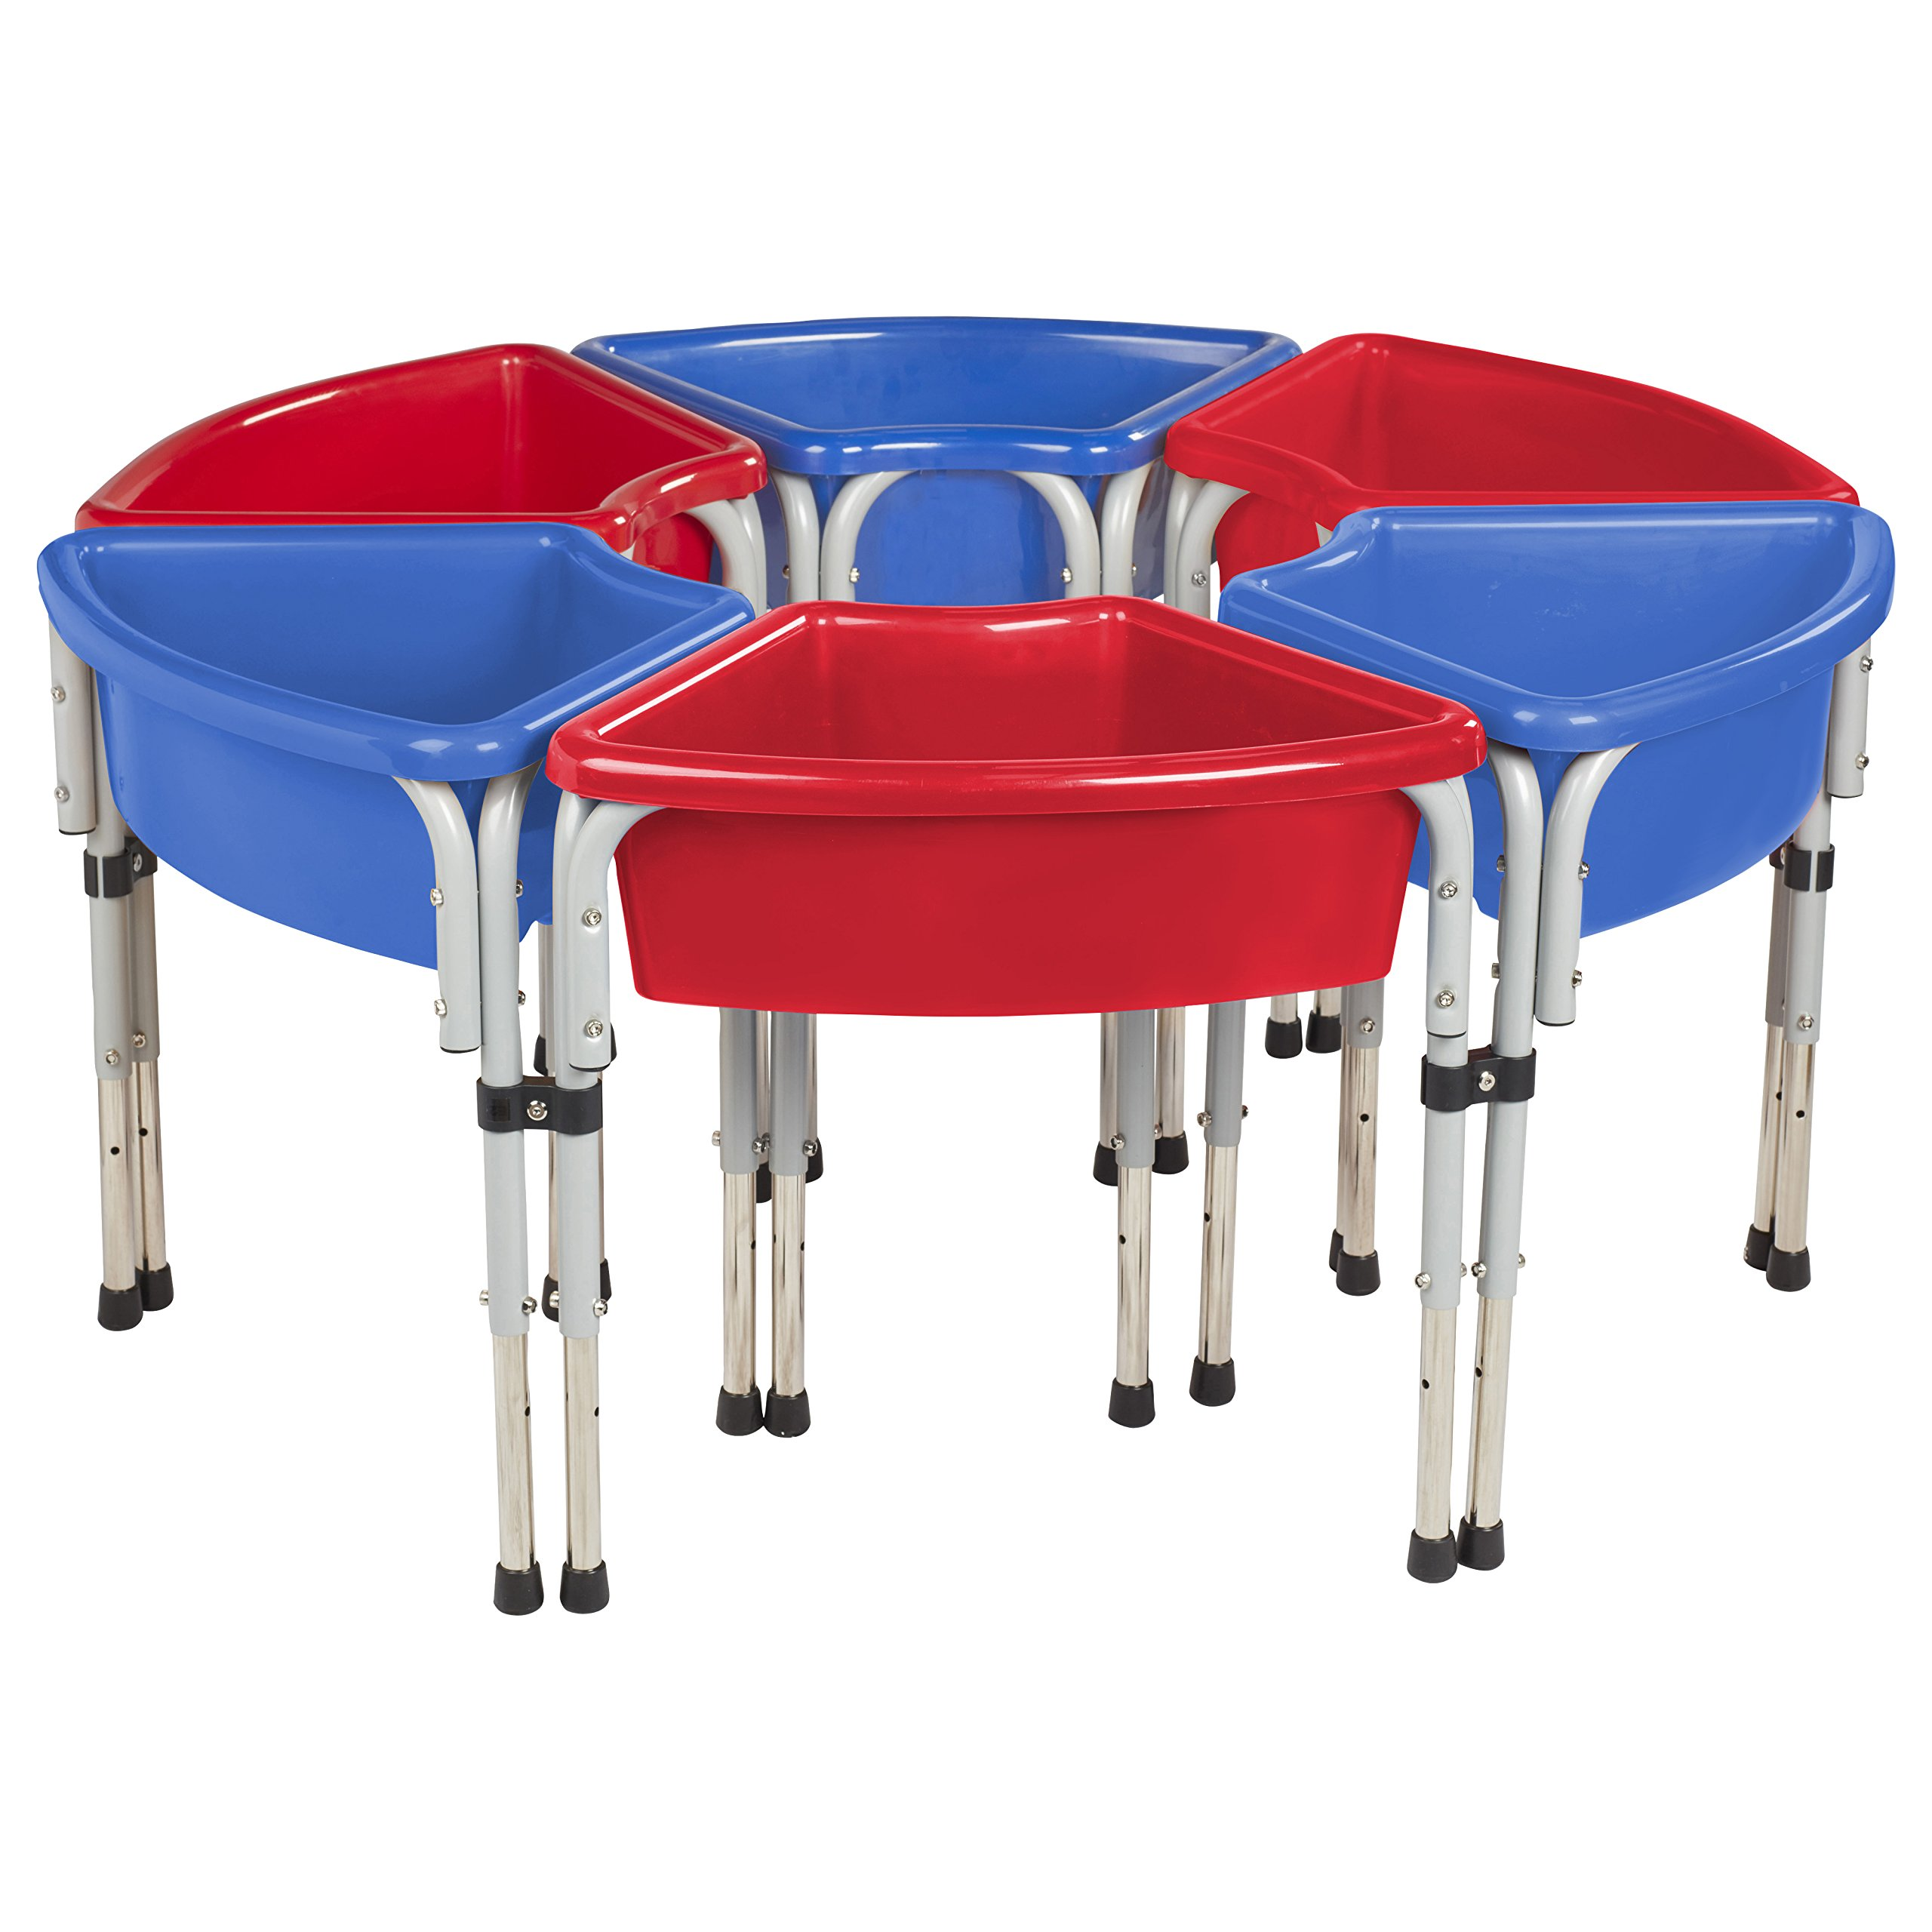 ECR4Kids Assorted Colors Sand and Water Adjustable Activity Play Table Center with Lids, Round (6-Station)